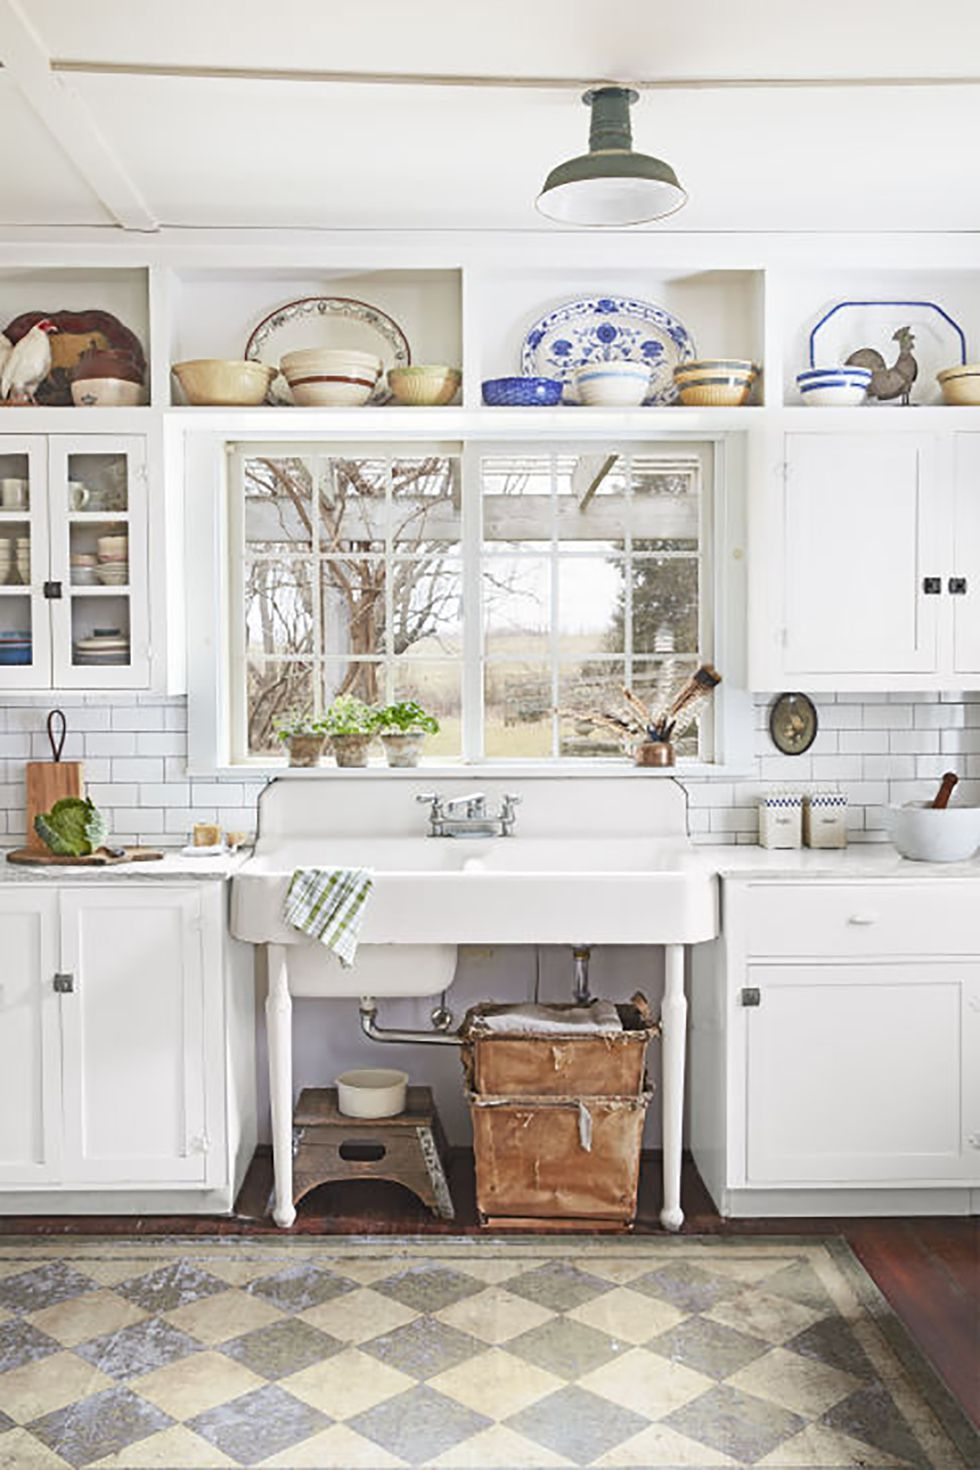 rustic country kitchen ideas inspiration remodel design kitchen